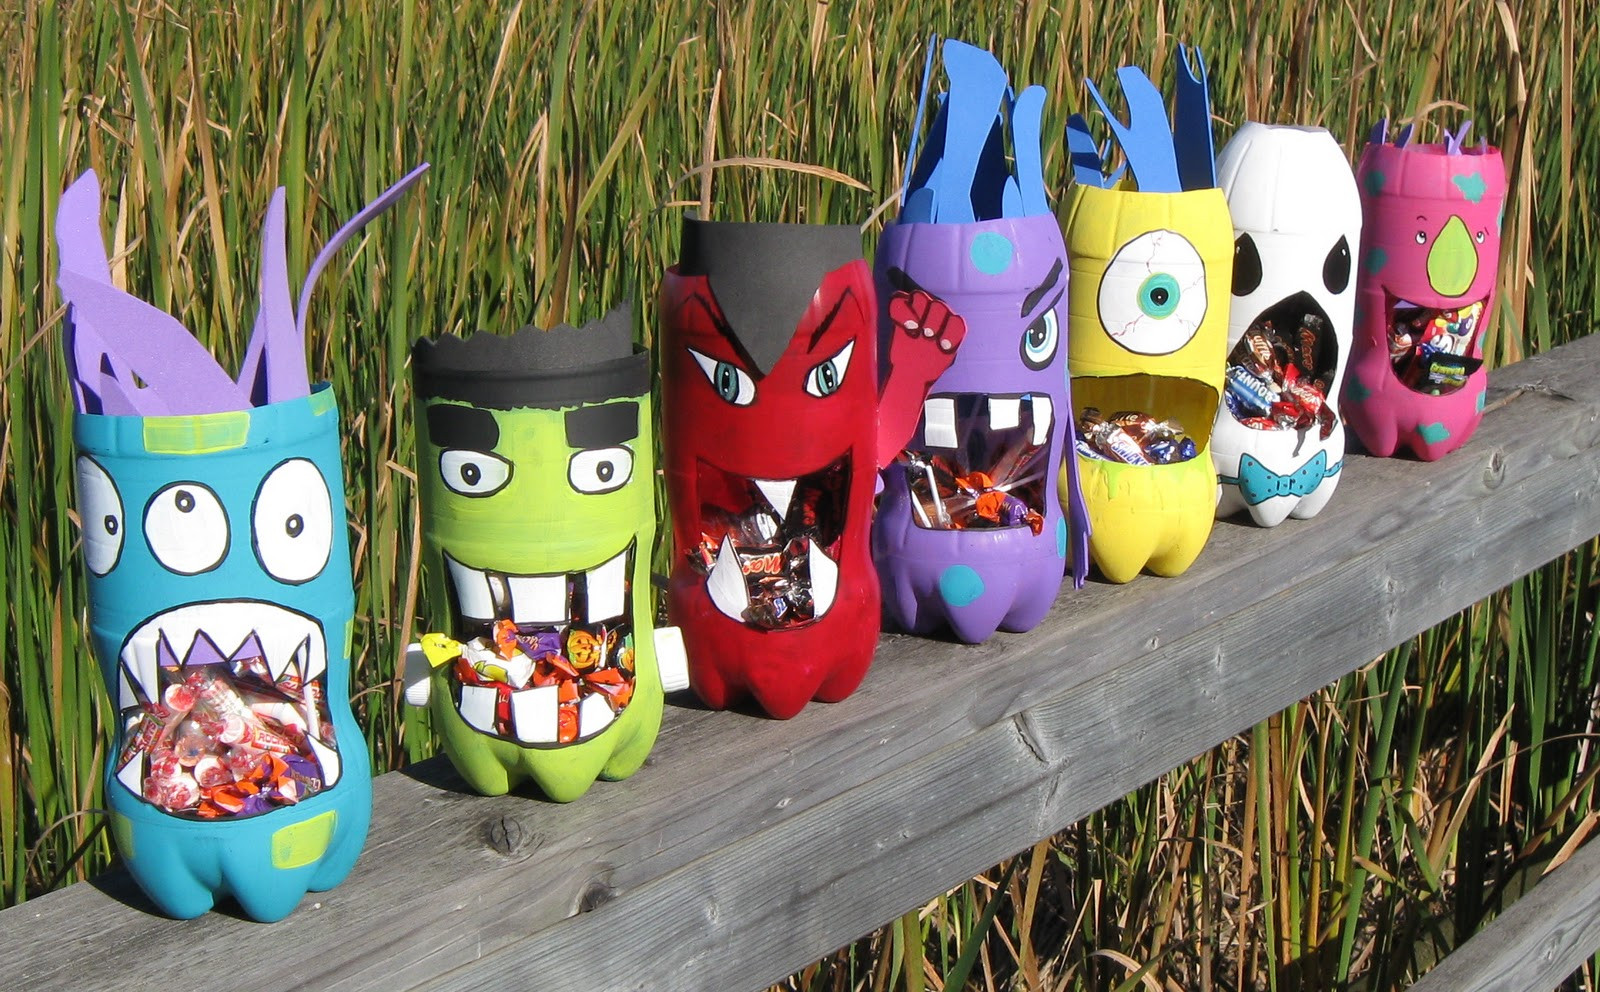 Halloween recycled bottle monster crafts preschool education for kids - Plastic bottles recycling ideas boundless imagination ...